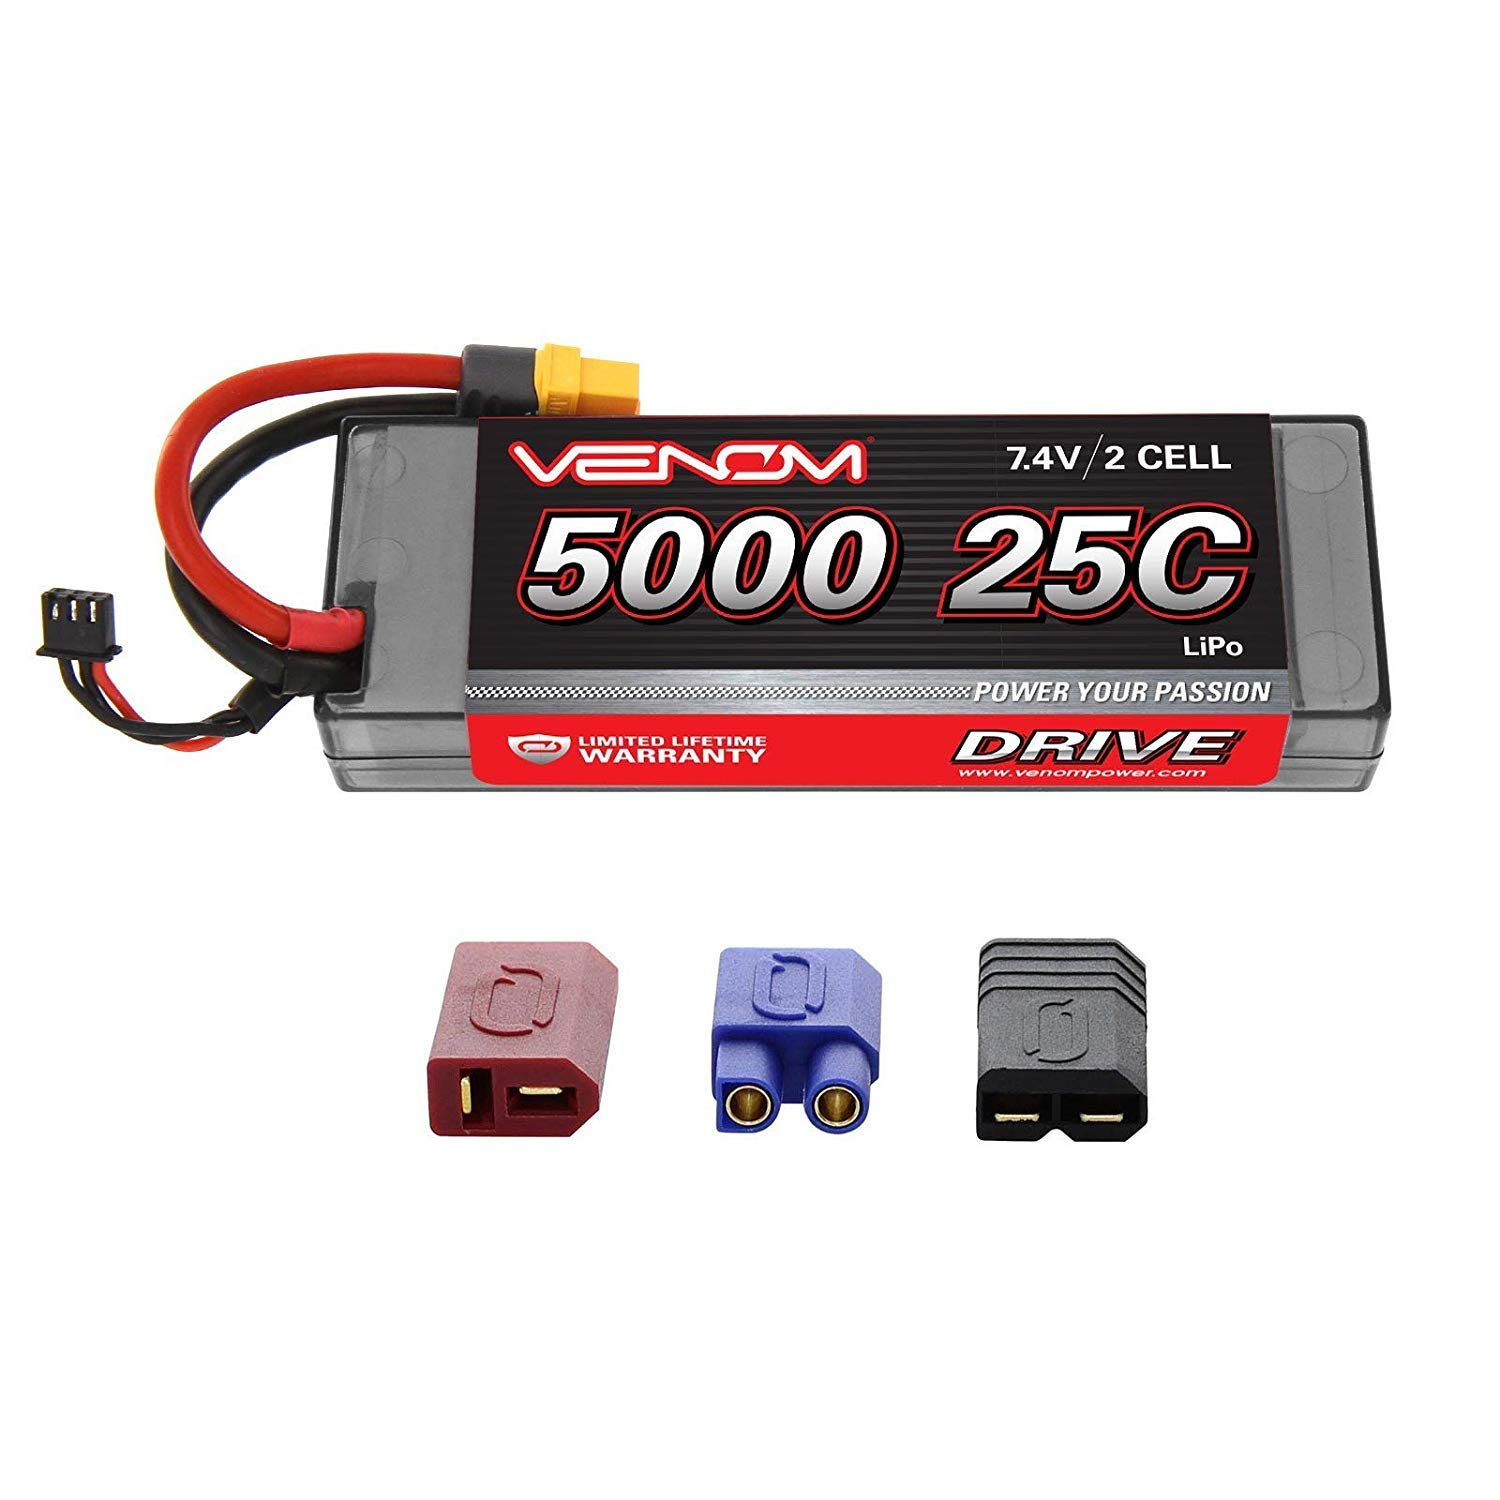 Venom Heavy-Duty 2S LiPo Battery   25C 2S 5000mAh 7.4V LiPo Battery   High-Performance Hard Case 2S LiPo RC Battery with Universal Plug and Adapter for Traxxas, Deans, EC3